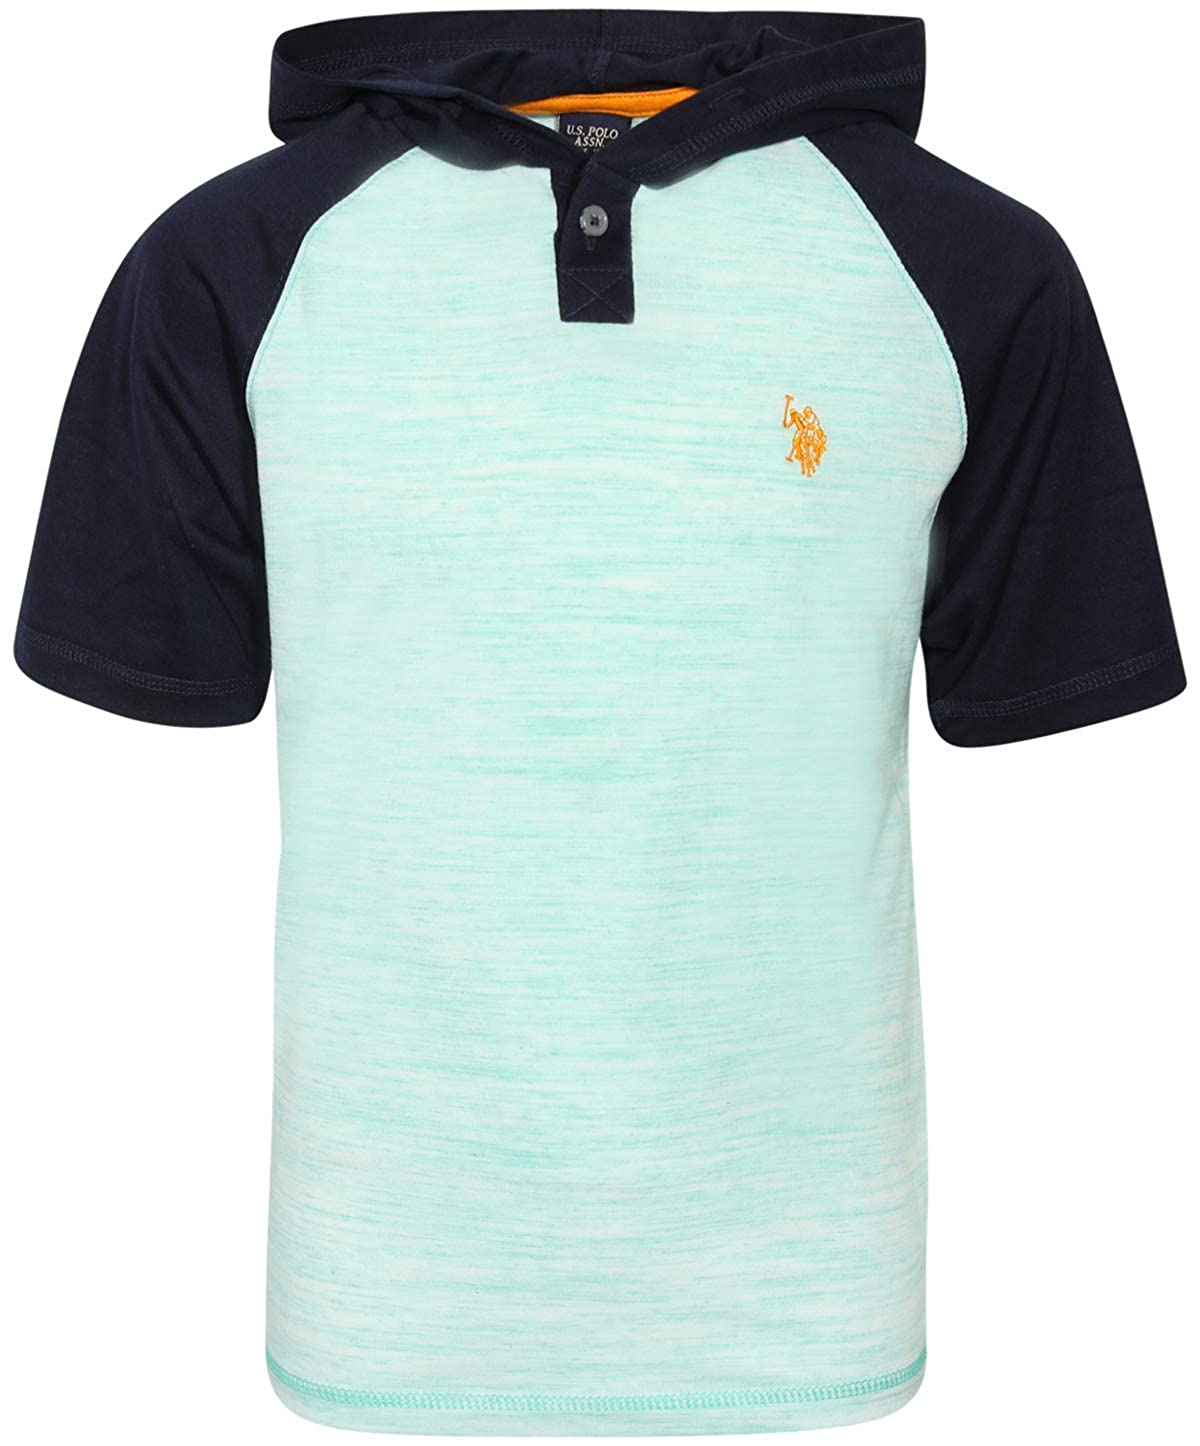 2 Pack Polo Assn U.S Boys Lightweight Pullover T-Shirt with Hood